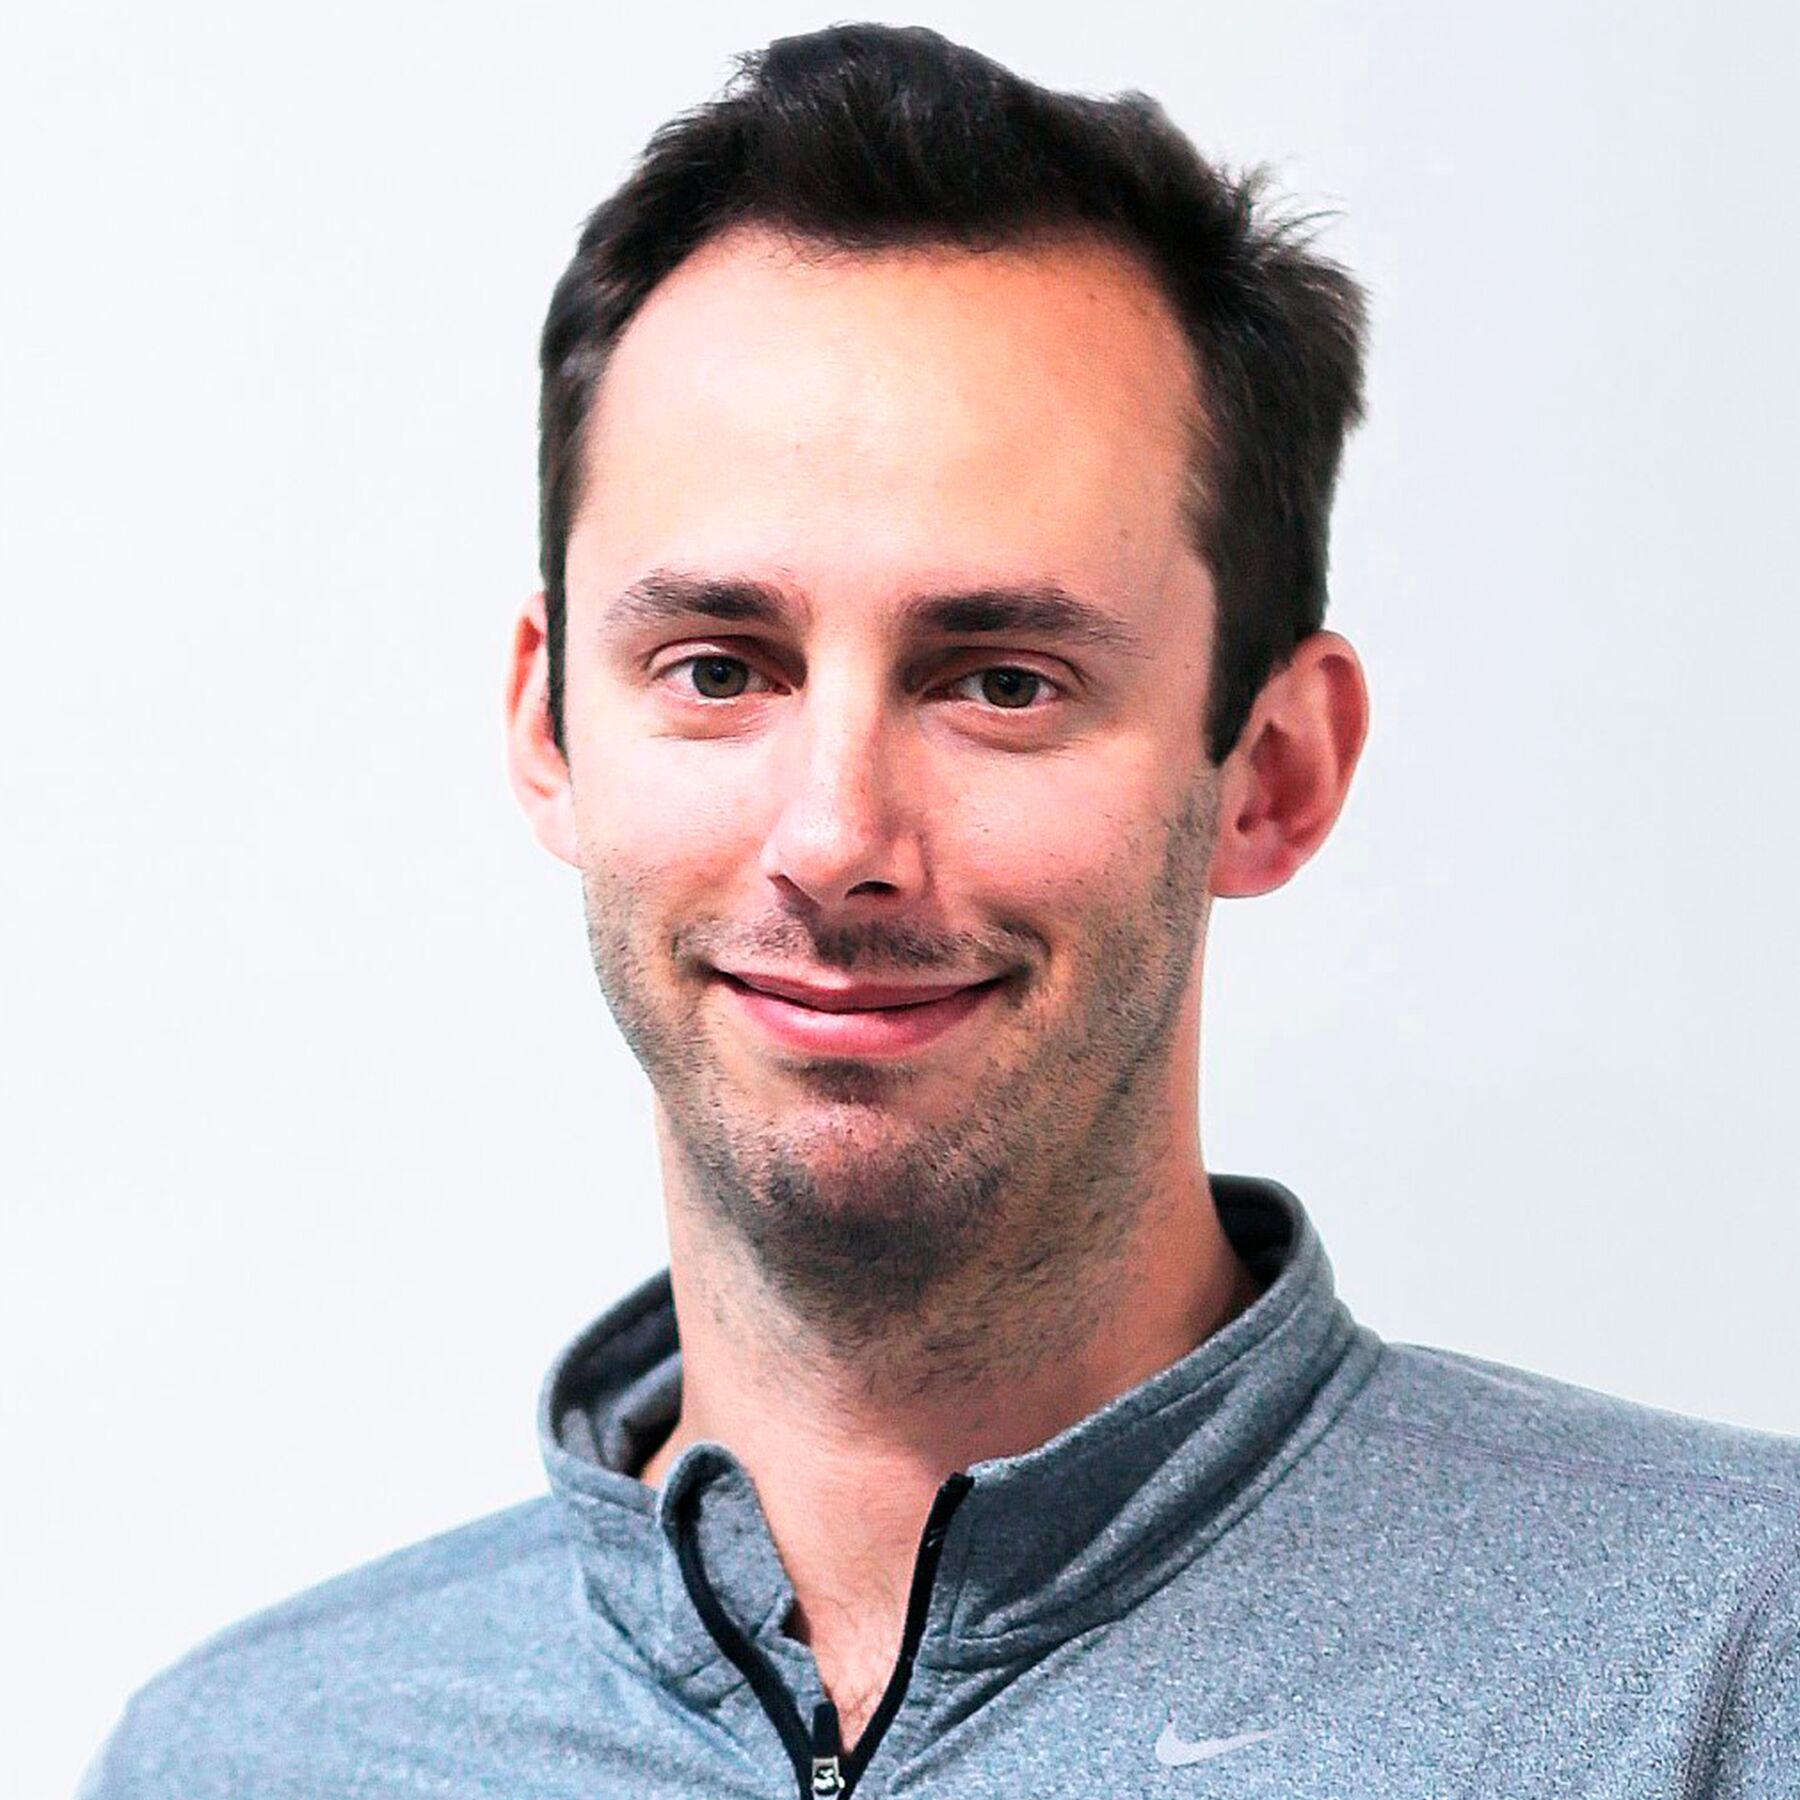 Anthony Levandowski will be speaking at TC Sessions: Robotics + AI April 18 at UC Berkeley